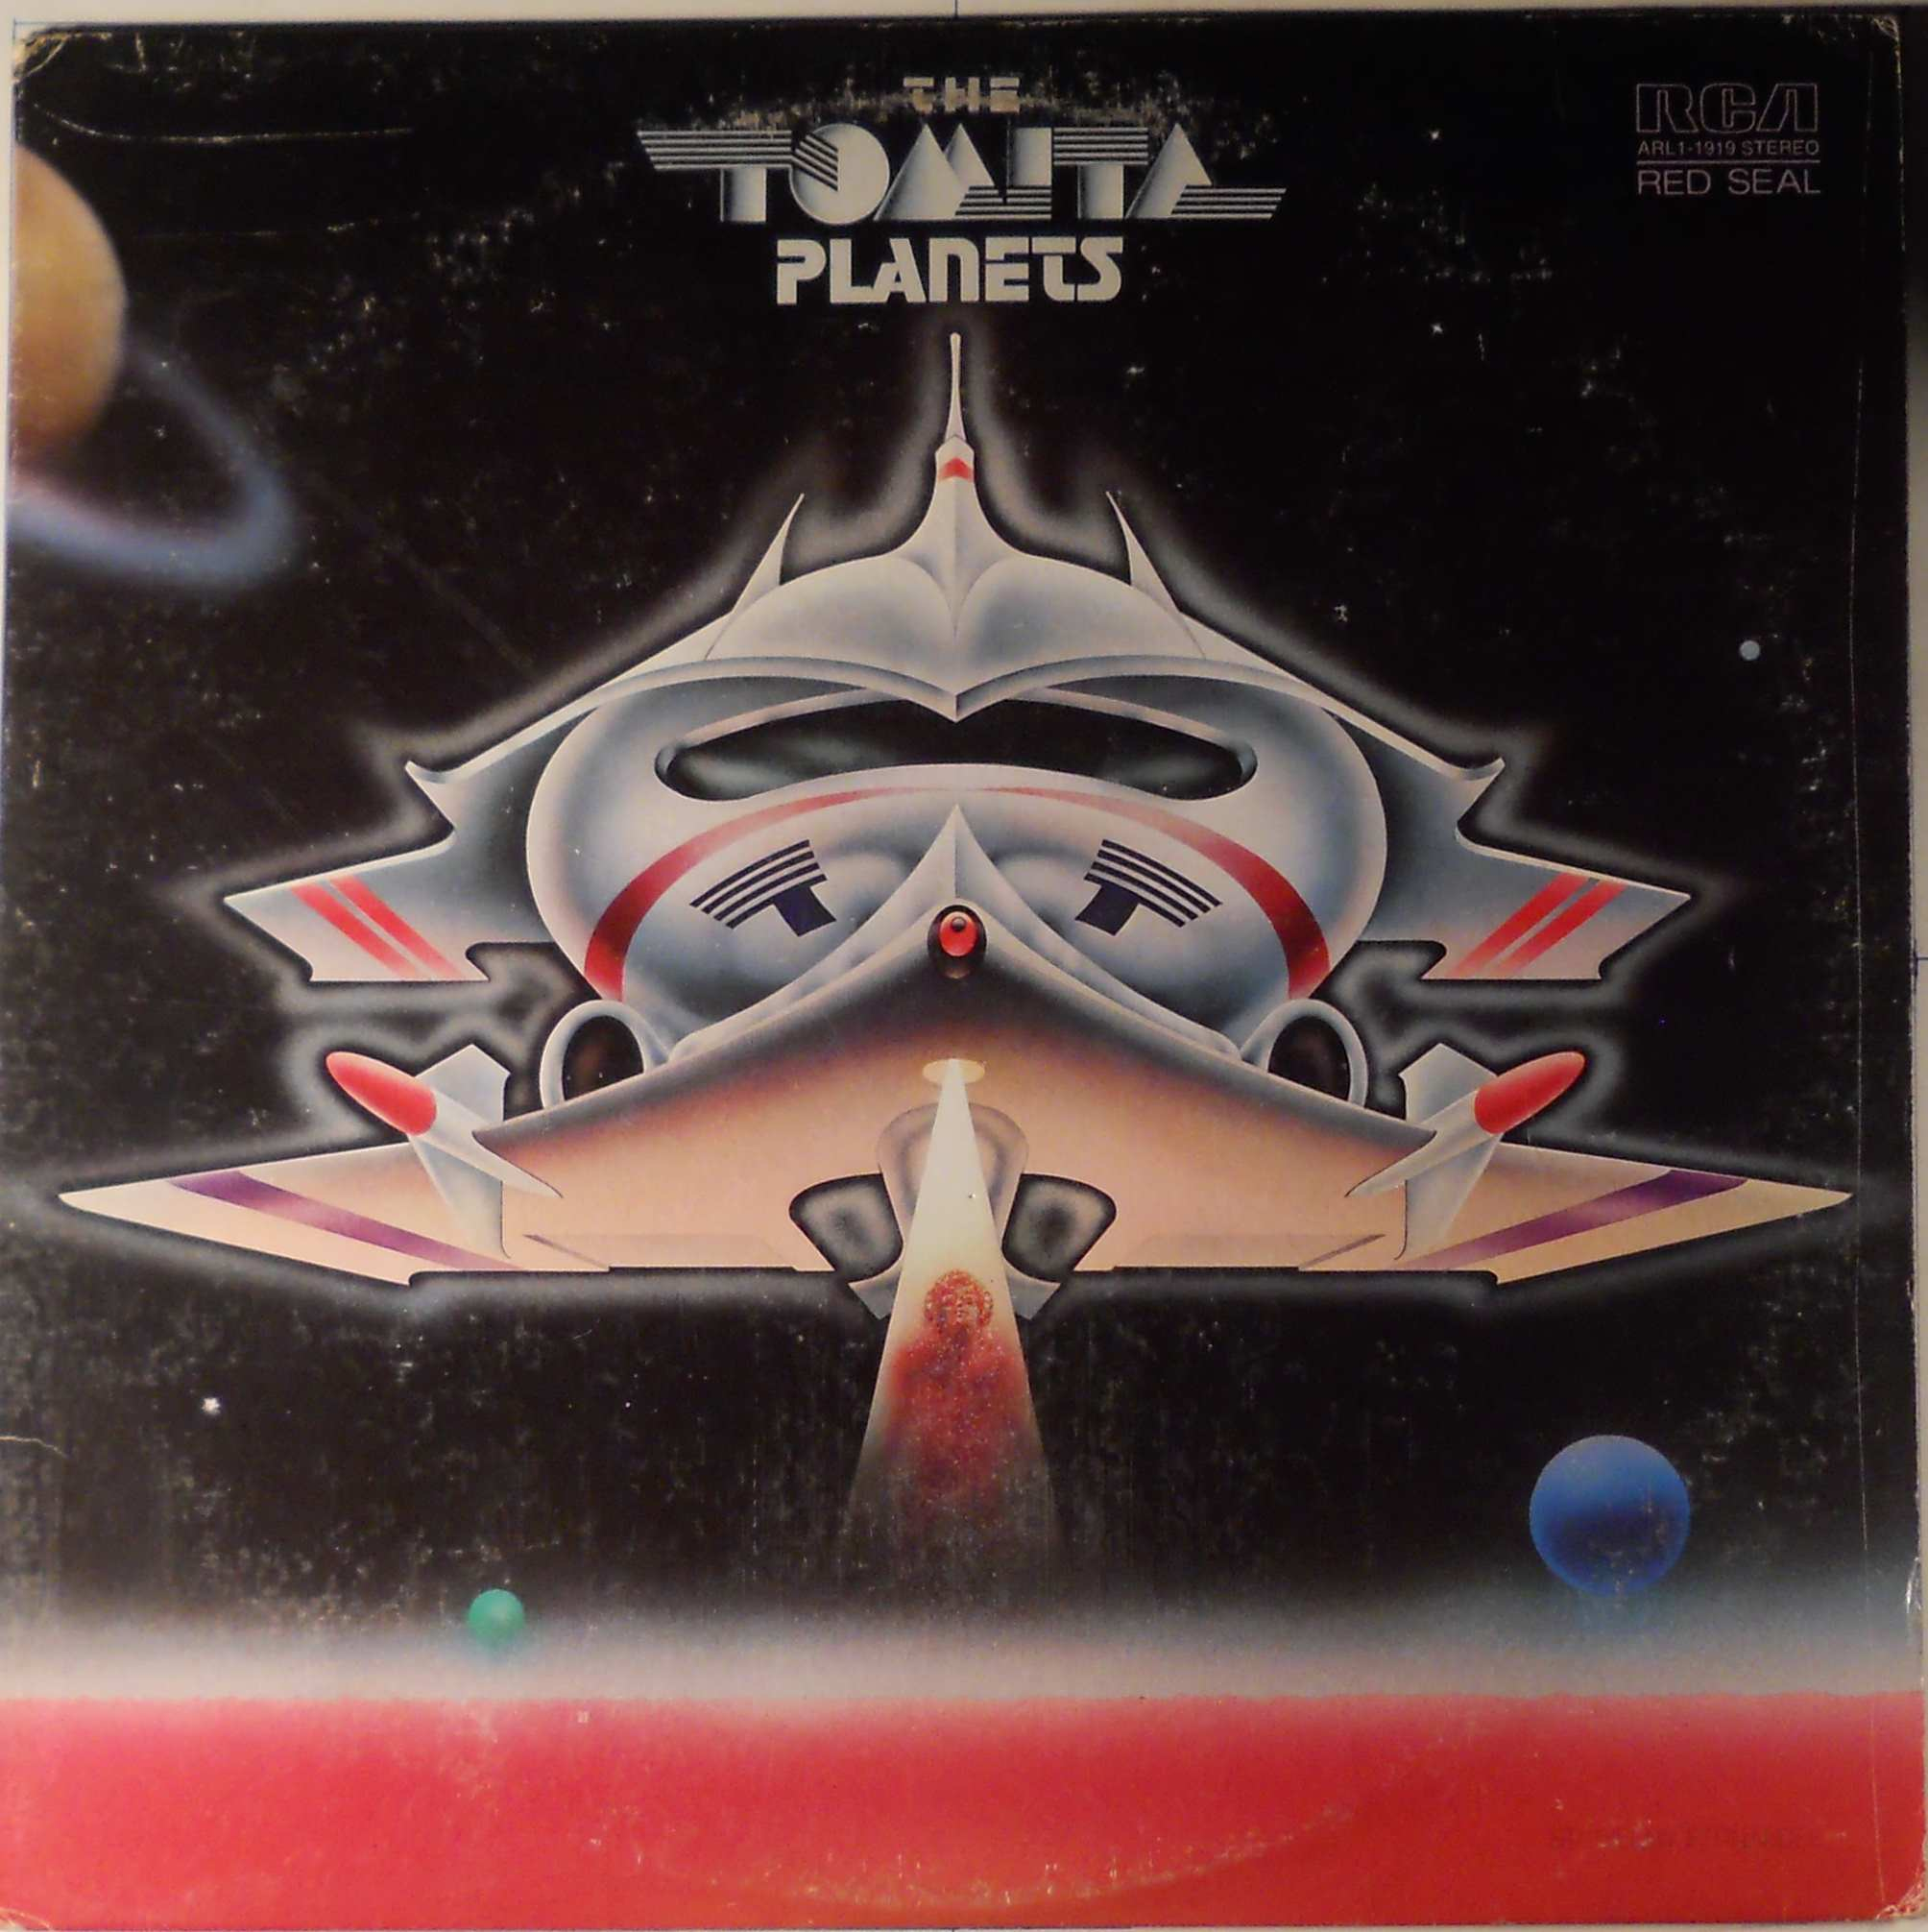 Tomita - The Planets